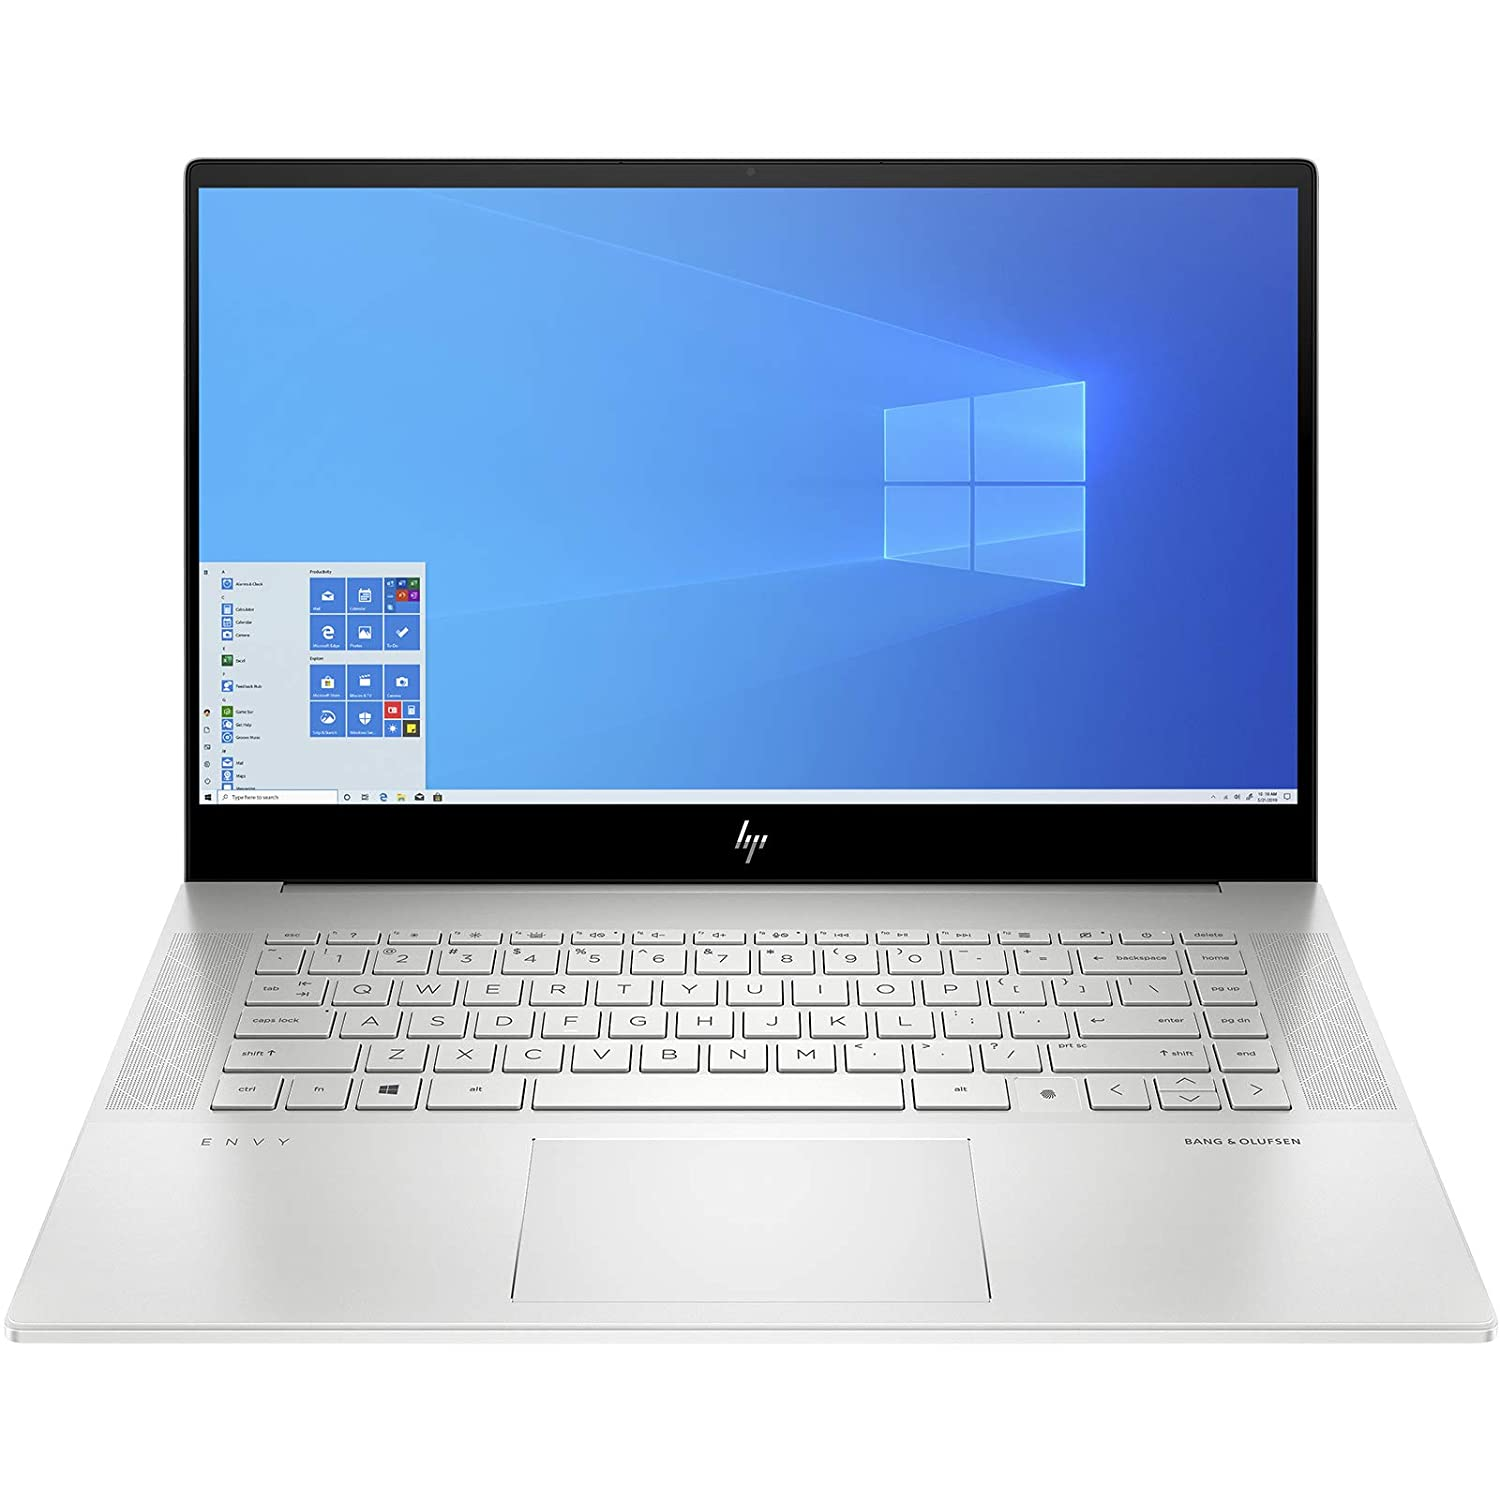 Amazon.in: Buy HP Envy 15-ep0123TX 15.6-inch Laptop (10th Gen  i7-10750H/16GB/1TB SSD/Windows 10 Home/NVIDIA 1660Ti 6 GB Graphics),  Natural Silver Online at Low Prices in India | HP Reviews & Ratings